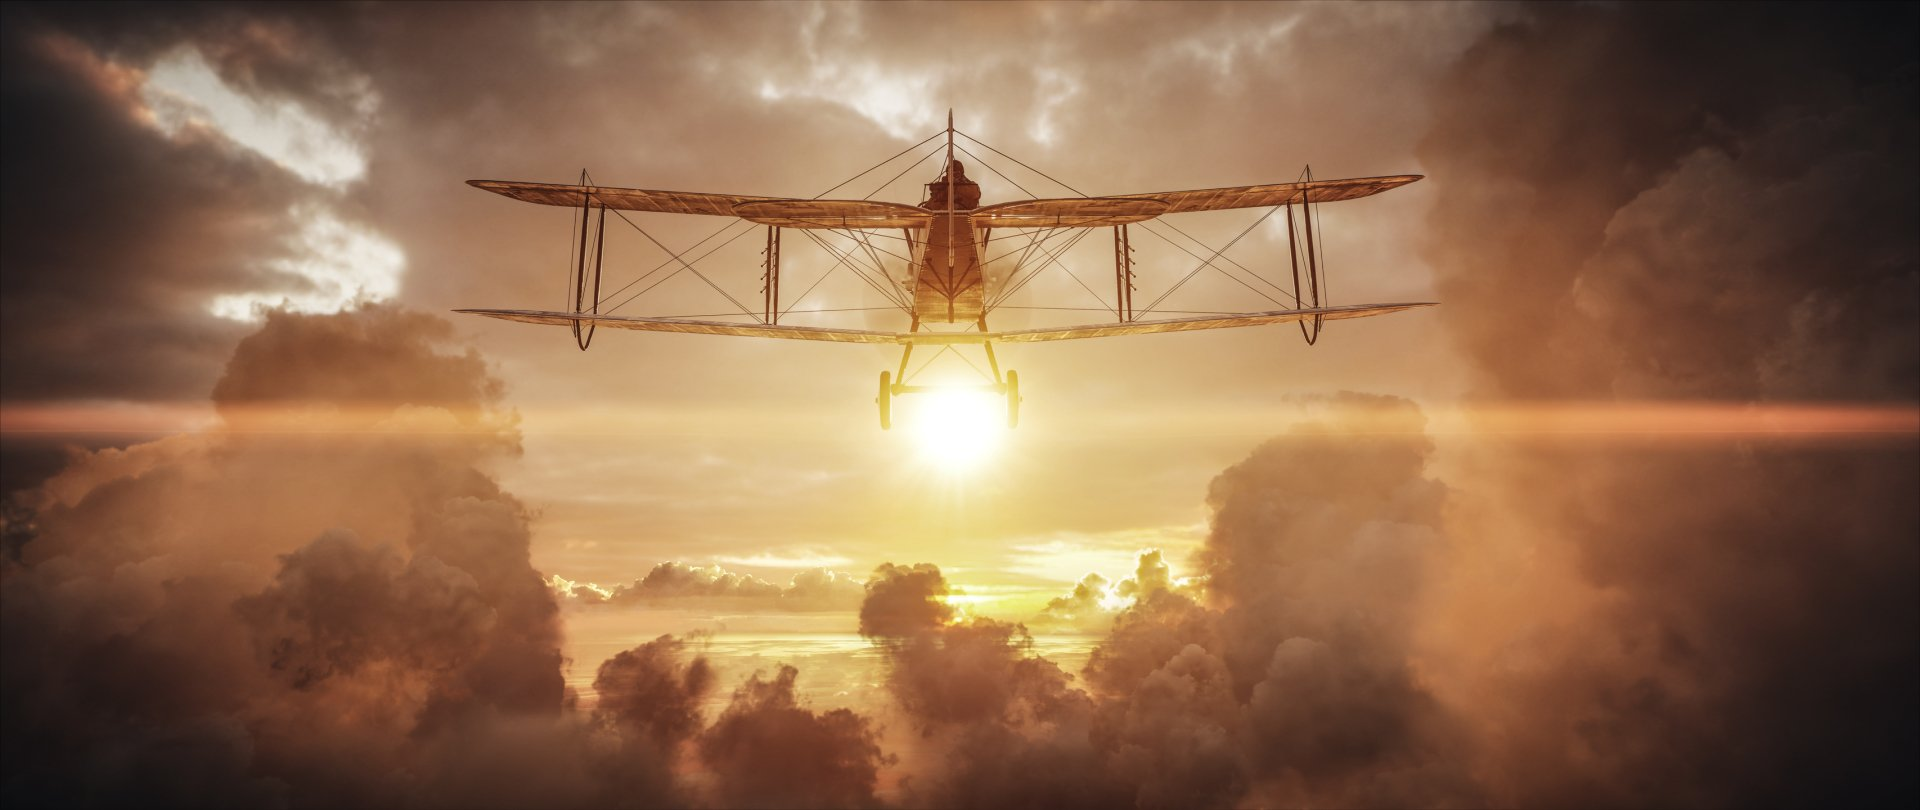 Video Game - Battlefield 1  Aircraft Wallpaper